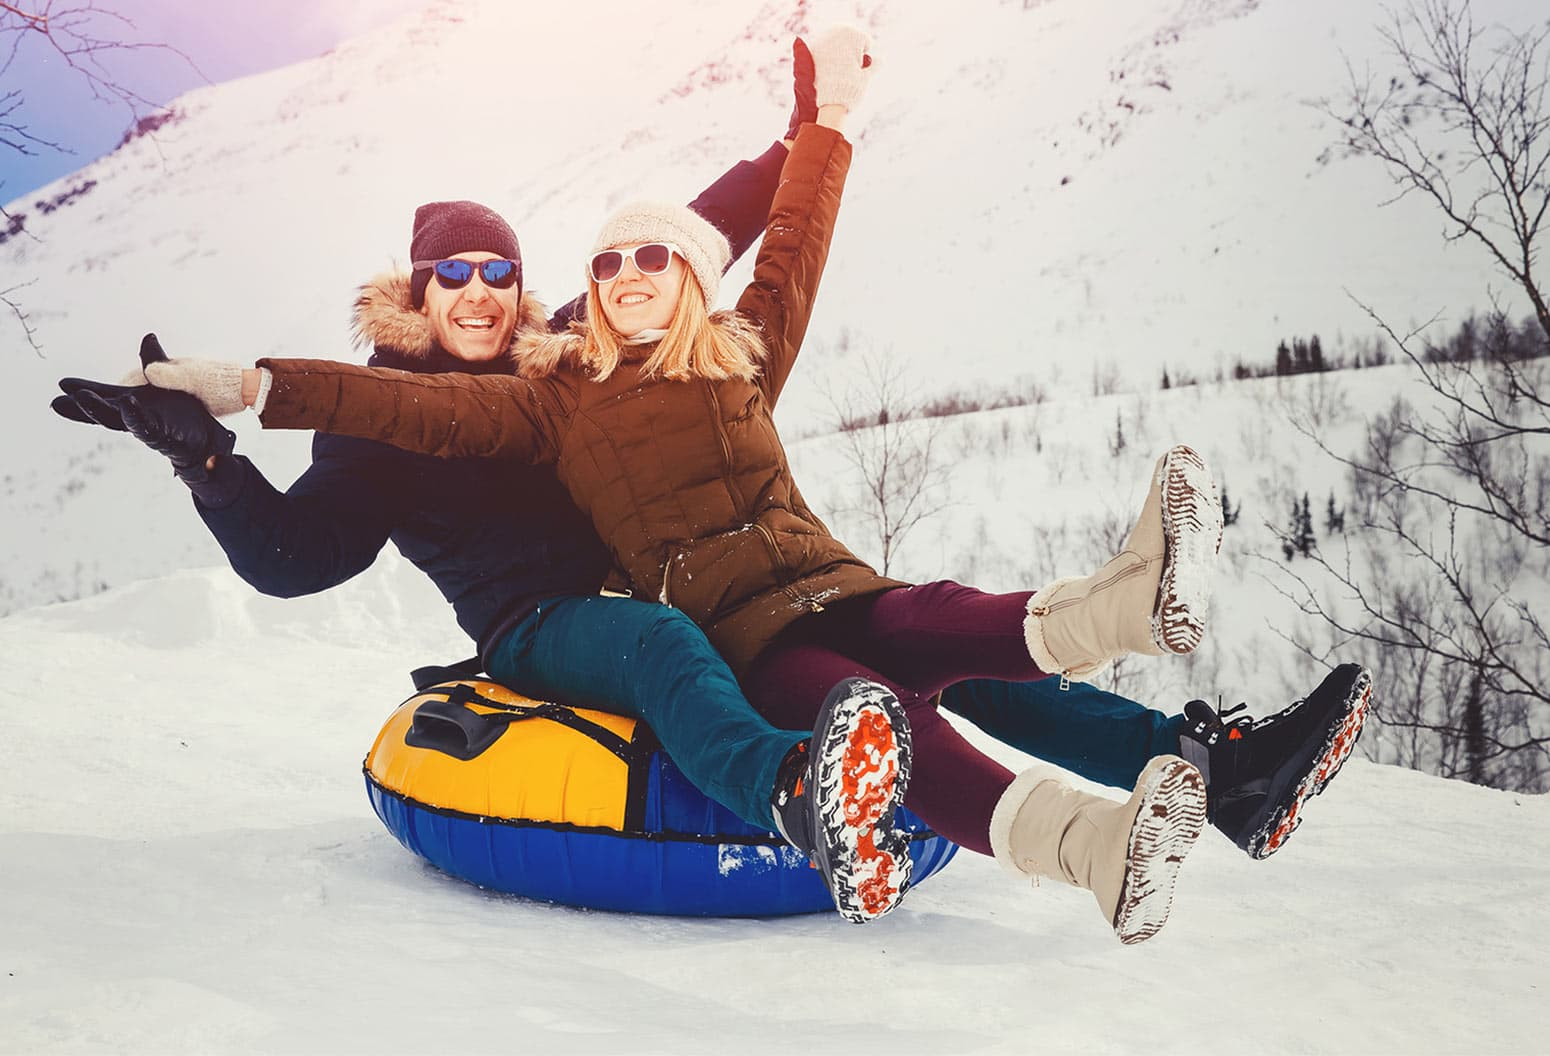 Couple in winter going downhill on a tube